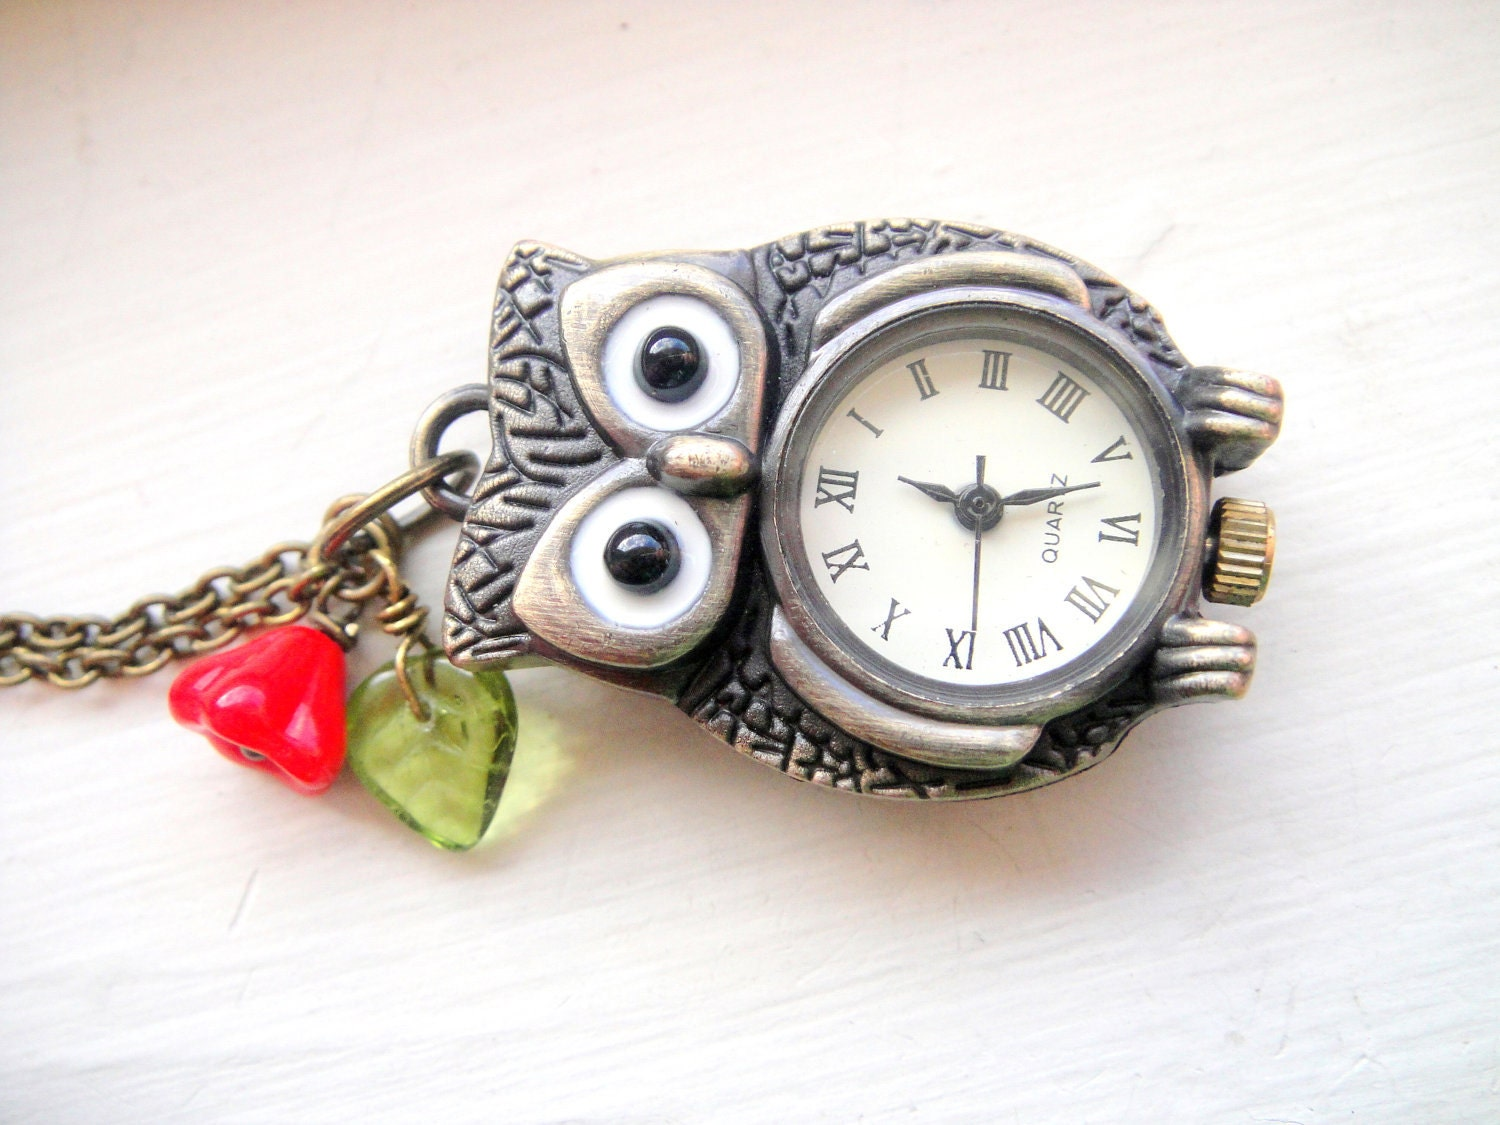 Owl Pocket Watch Necklace - Owl Watch in Antique Brass with Red Czech Glass Flower - Harry Potter, Hedwig, Owl Necklace, Pocketwatch